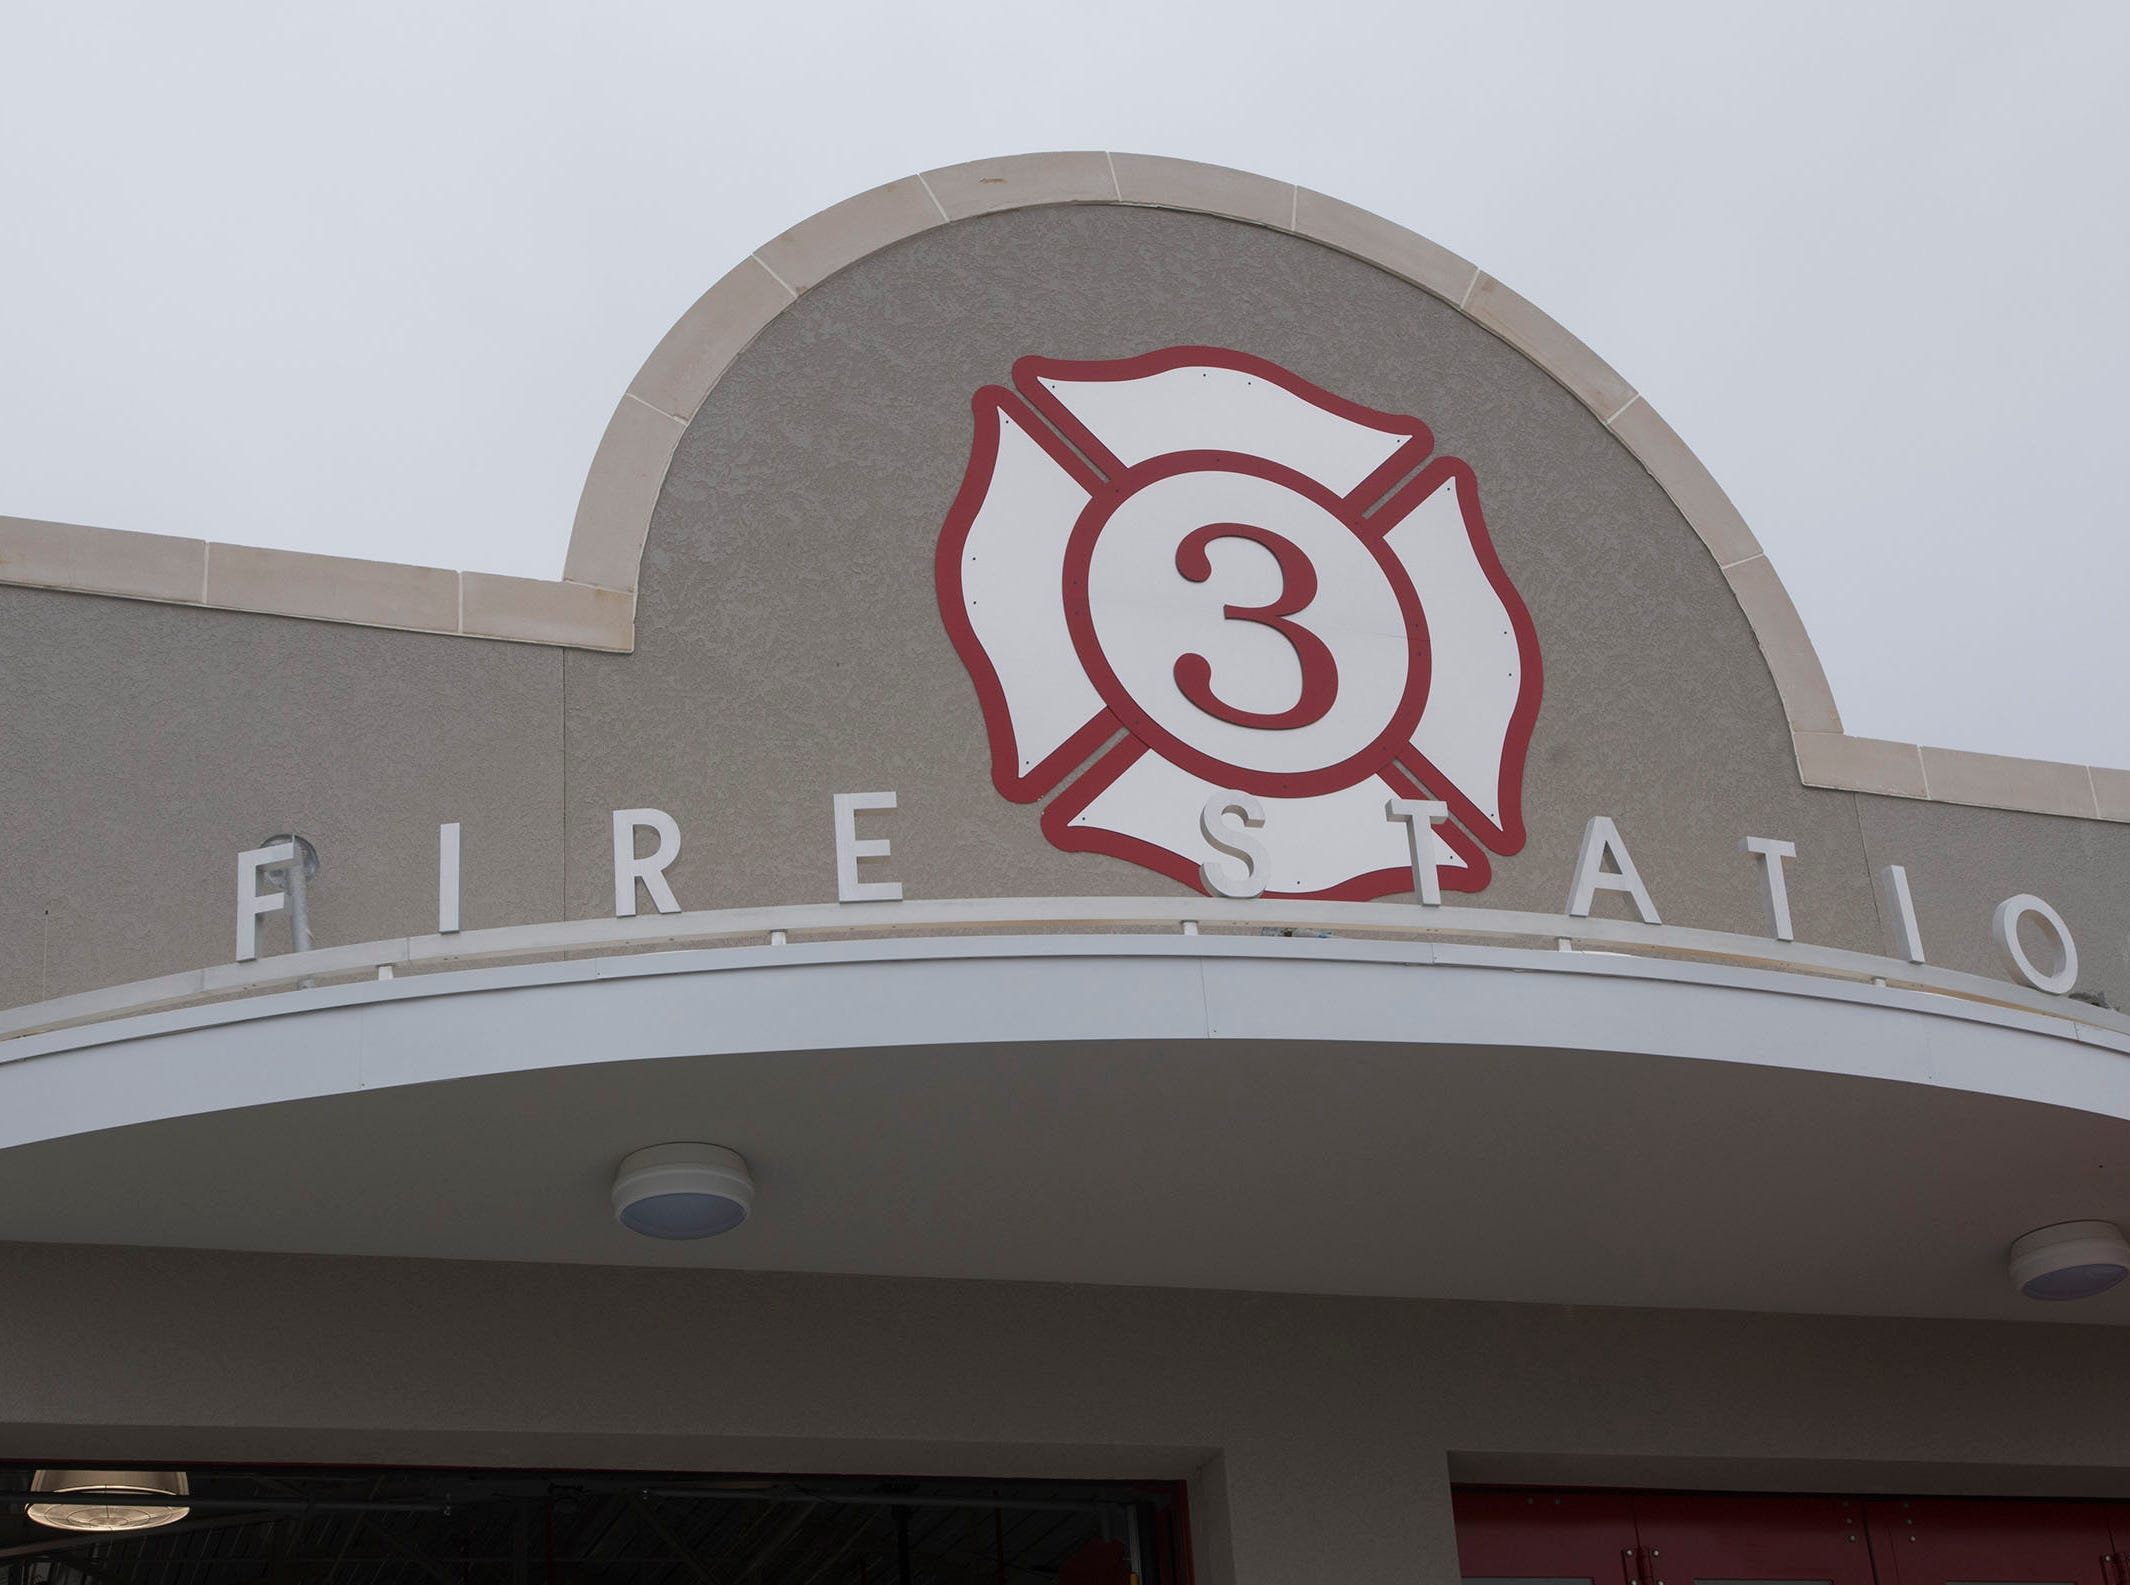 Pensacola's new Fire Station No. 3 off of Summit Boulevard is ready for business on Thursday, March 14, 2019. The new building replaces the current station built in 1969.